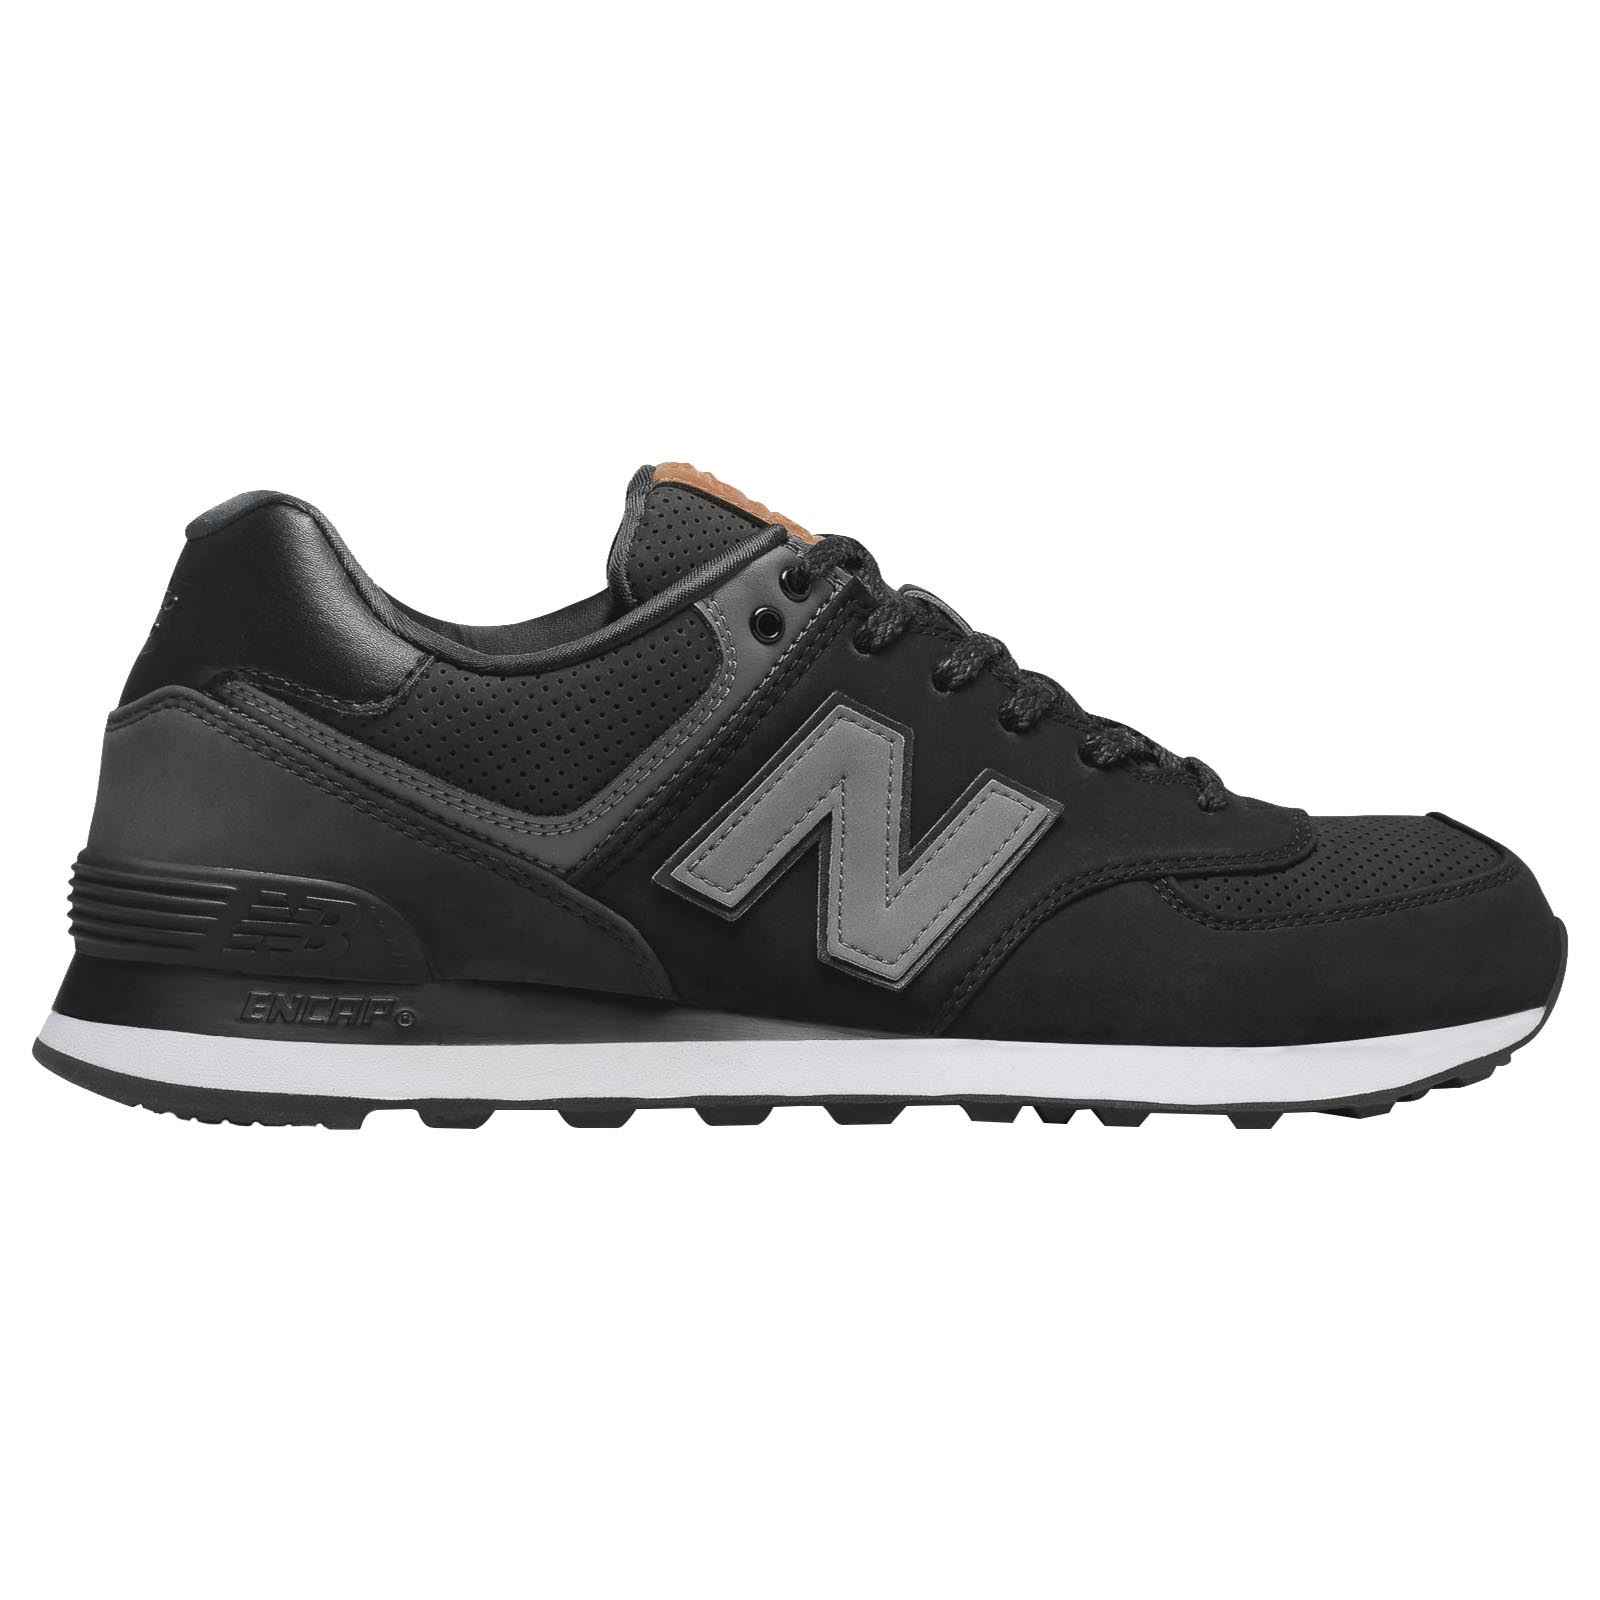 New Balance 574 Classics Black Greystone Mens Lace up Low top Sneakers Trainers